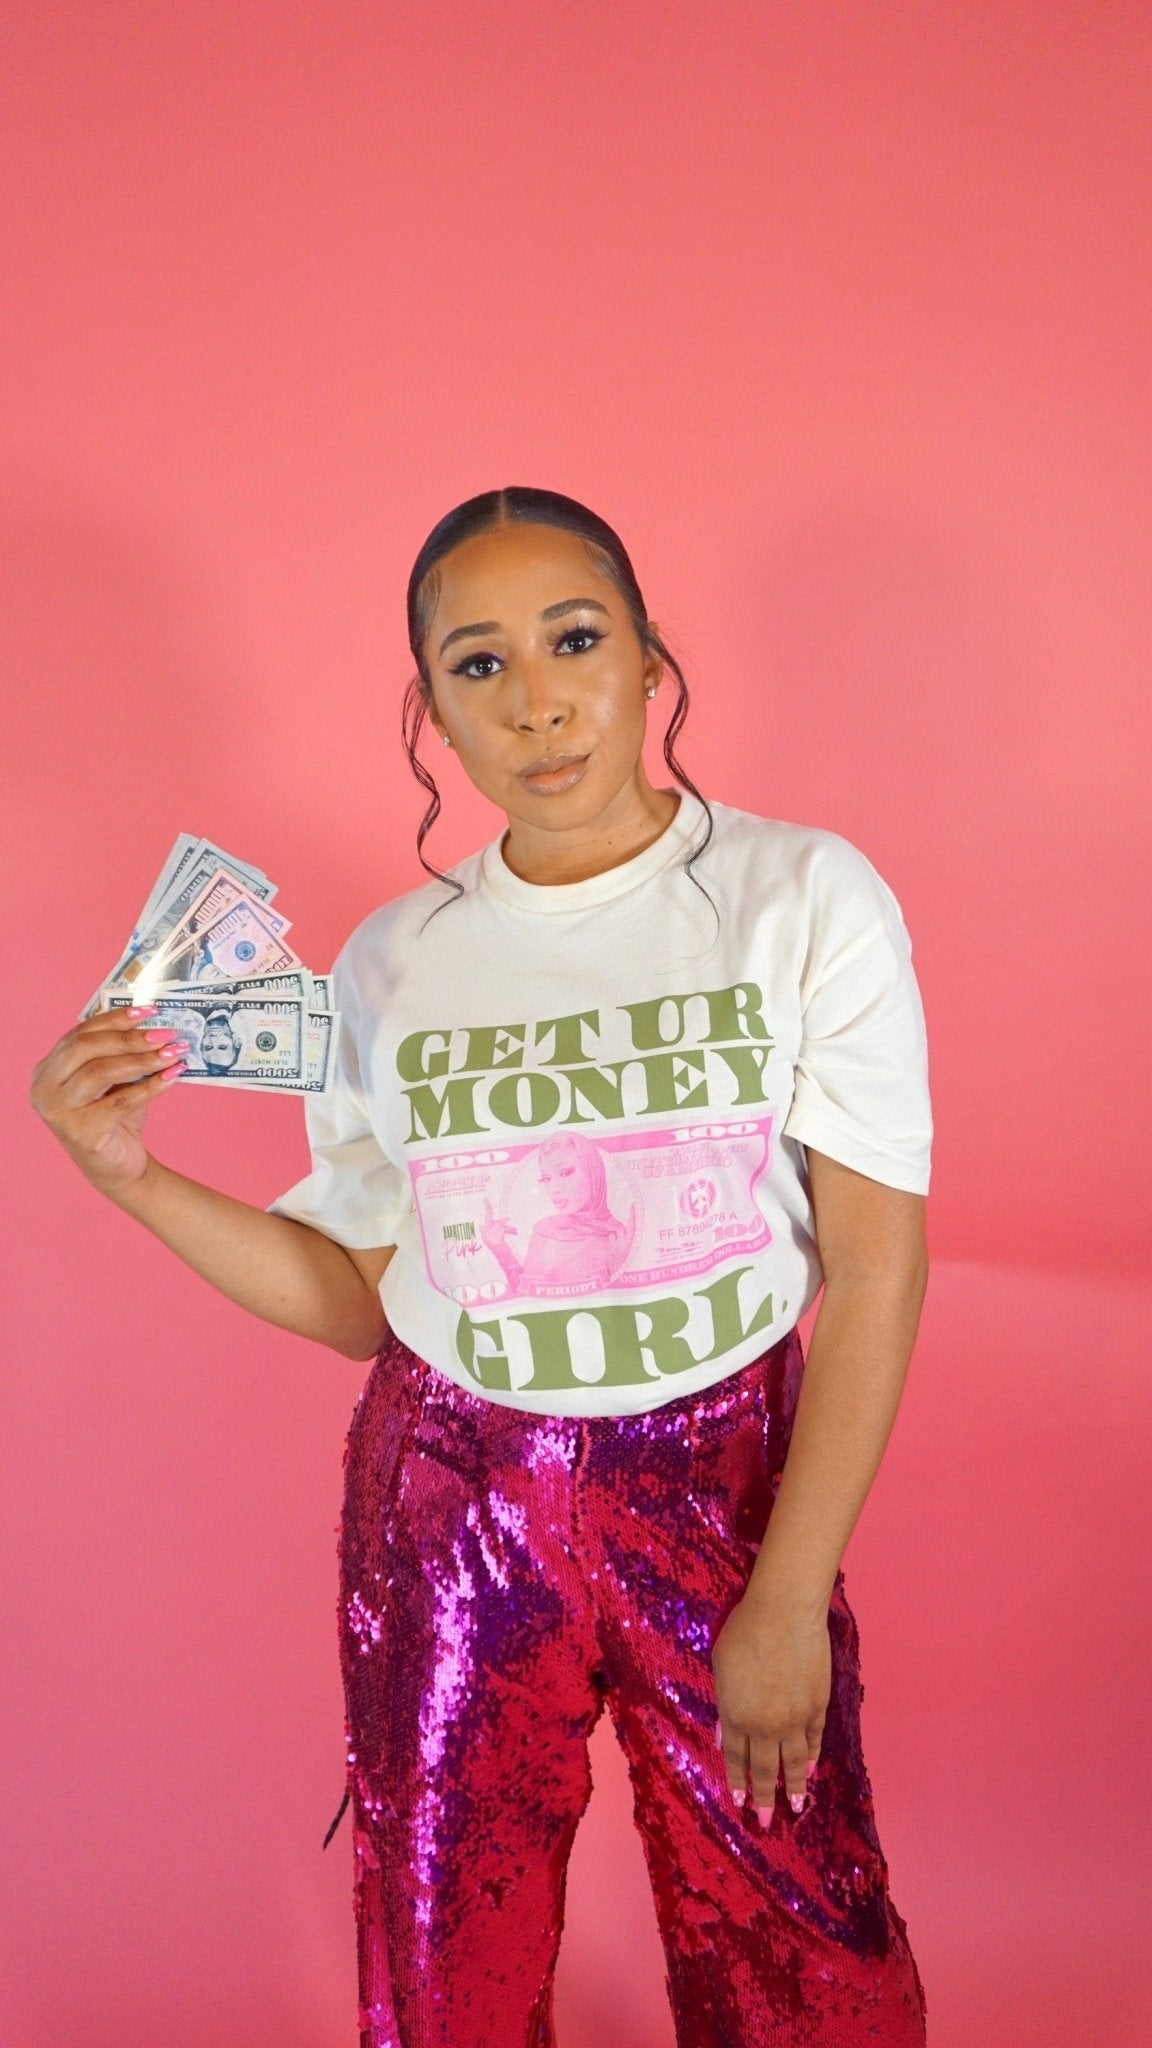 Get Your Money Girl / T-Shirt - Ambition Is The New Pink